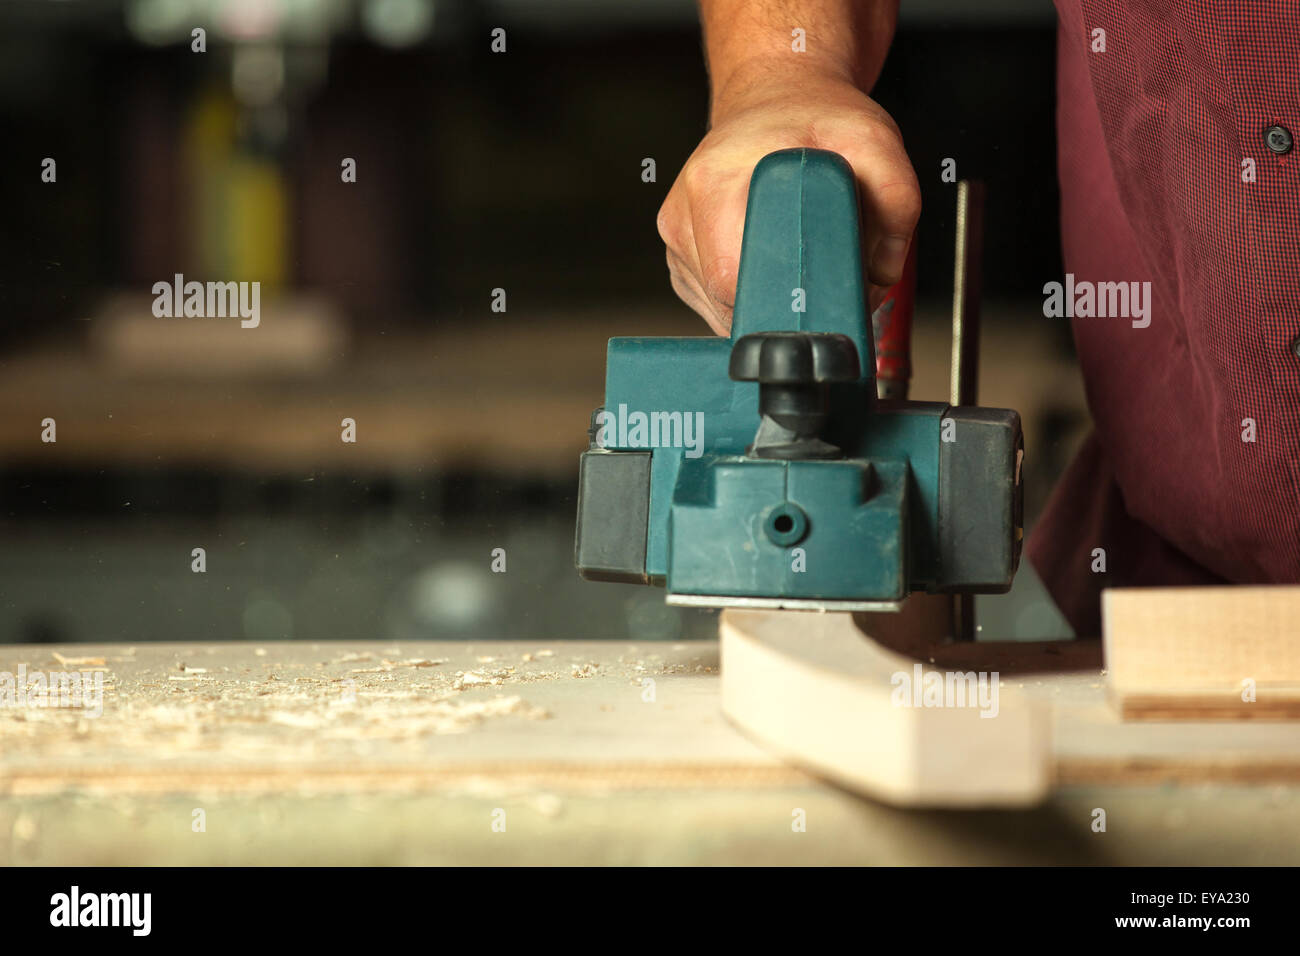 Wood Planer Stock Photos Amp Wood Planer Stock Images Alamy